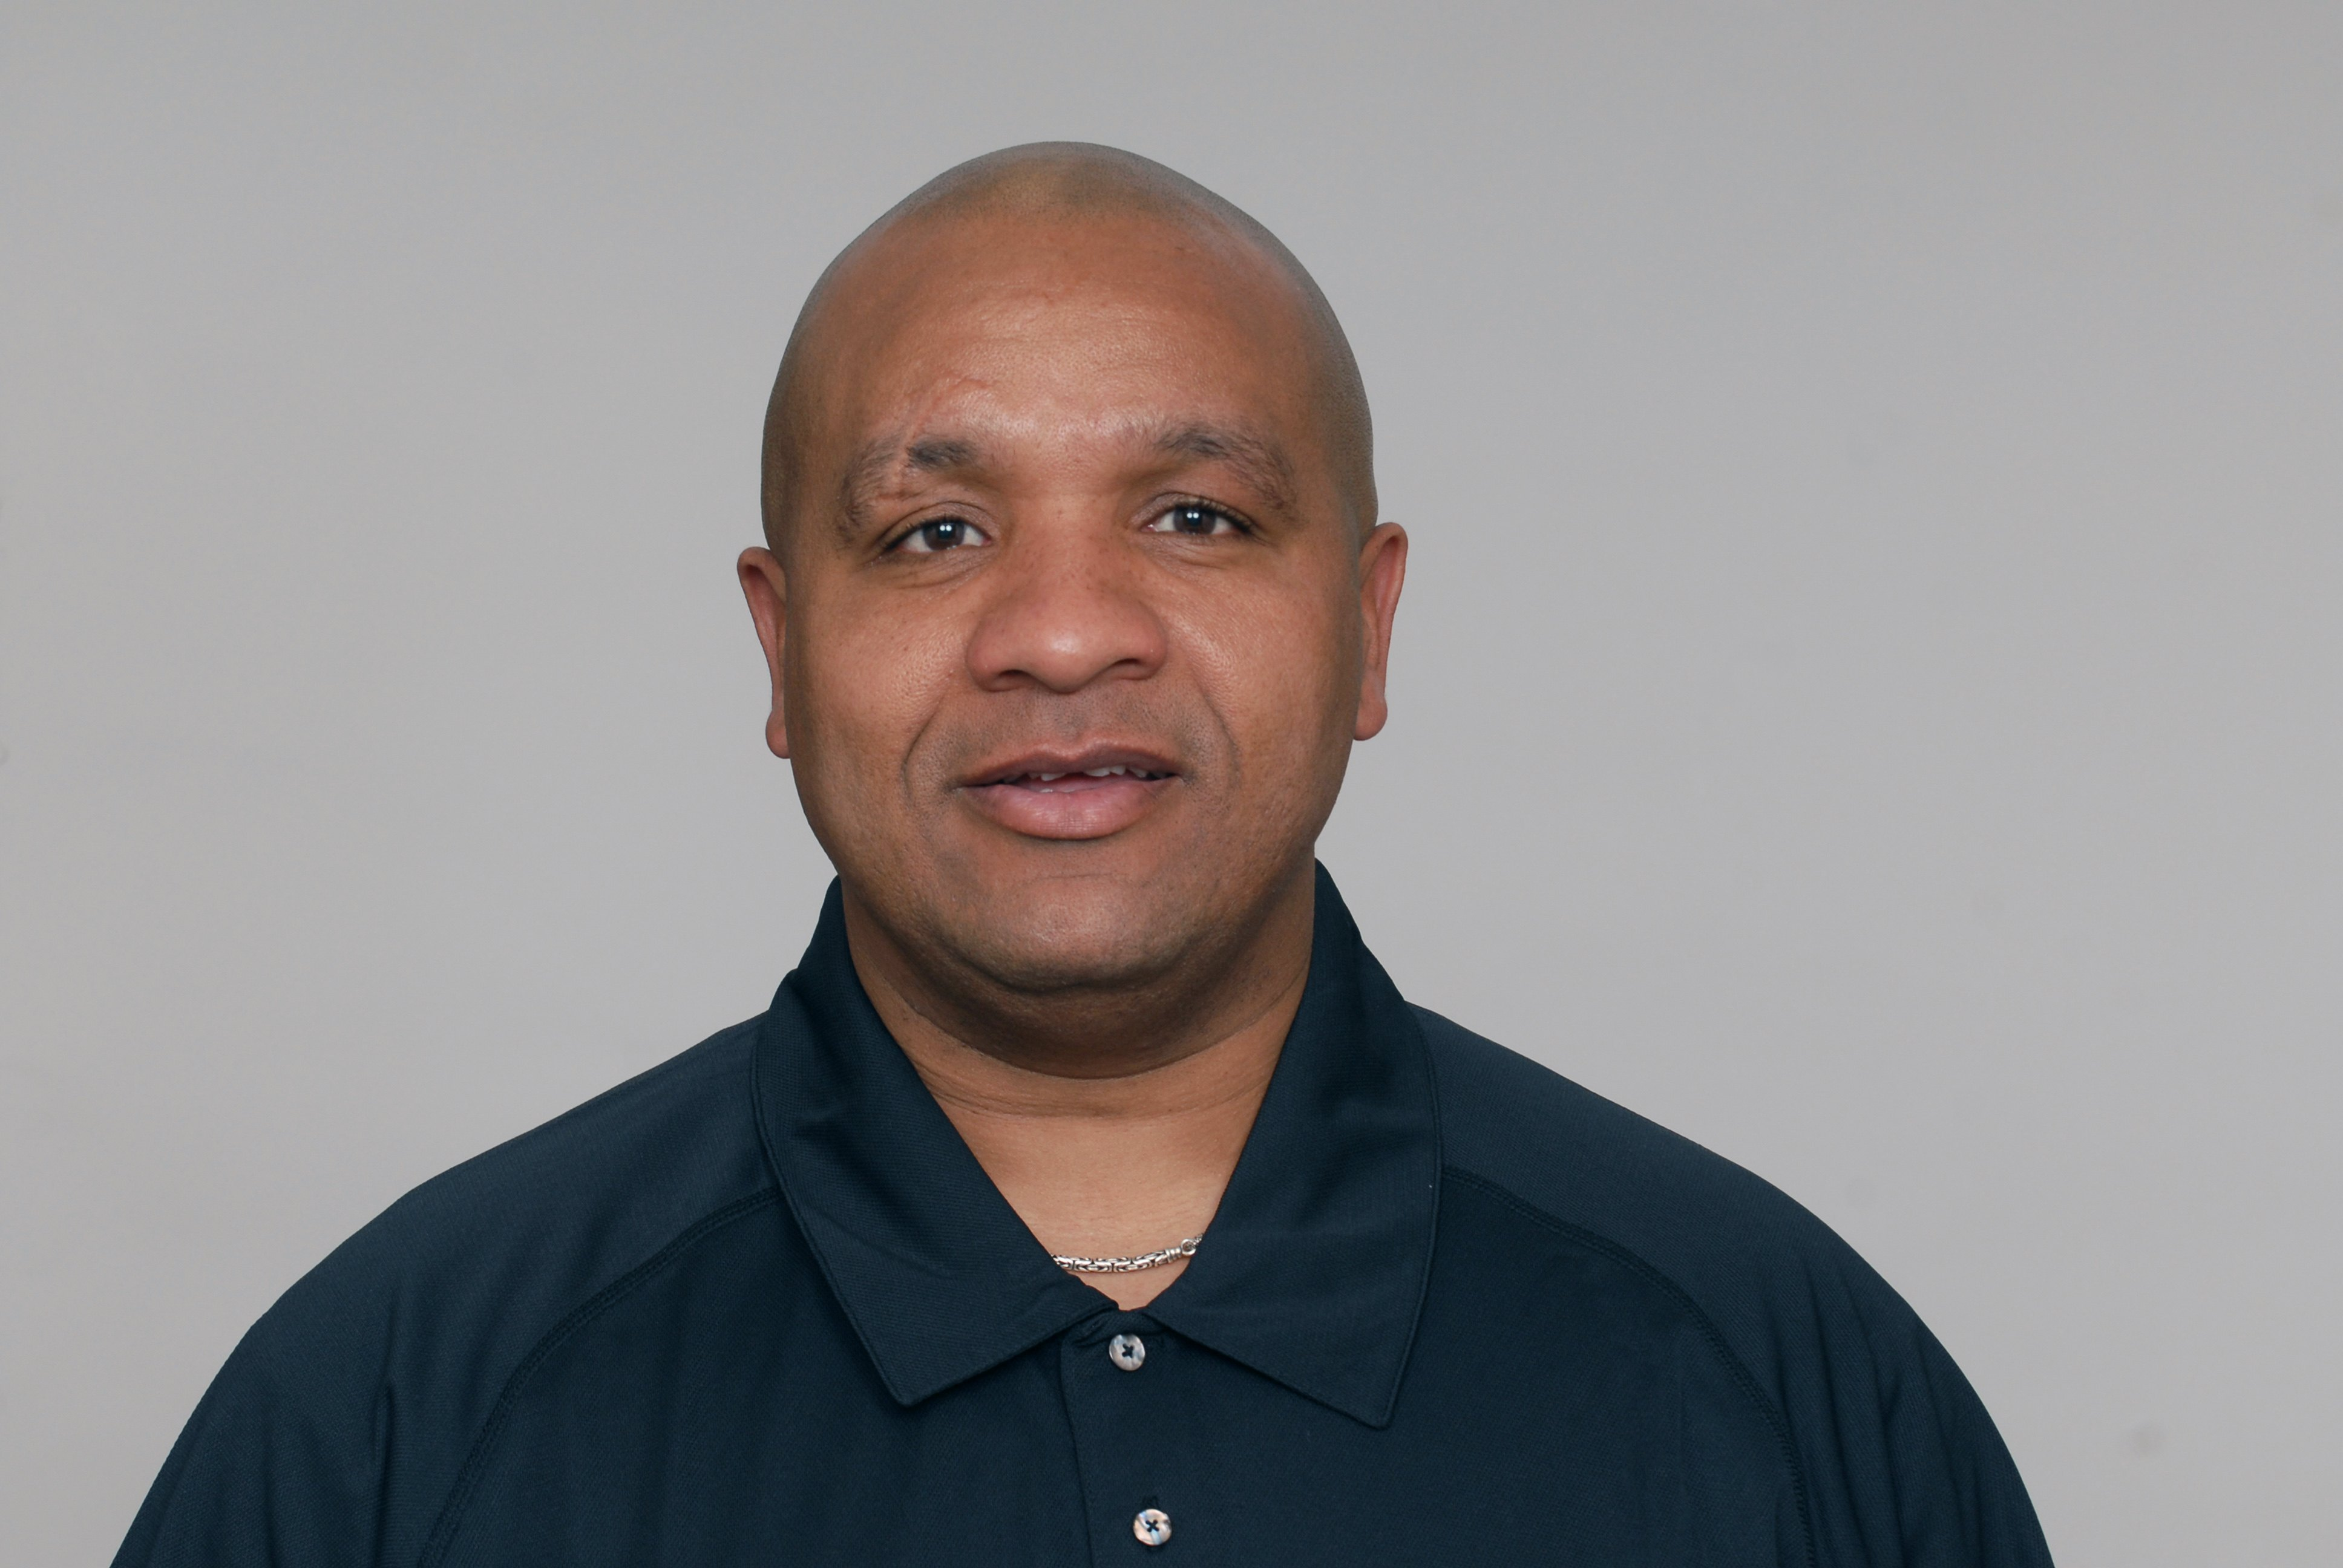 BALTIMORE - 2009:  Hue Jackson of the Baltimore Ravens poses for his 2009 NFL headshot at photo day in Baltimore, Maryland. (Photo by NFL Photos)